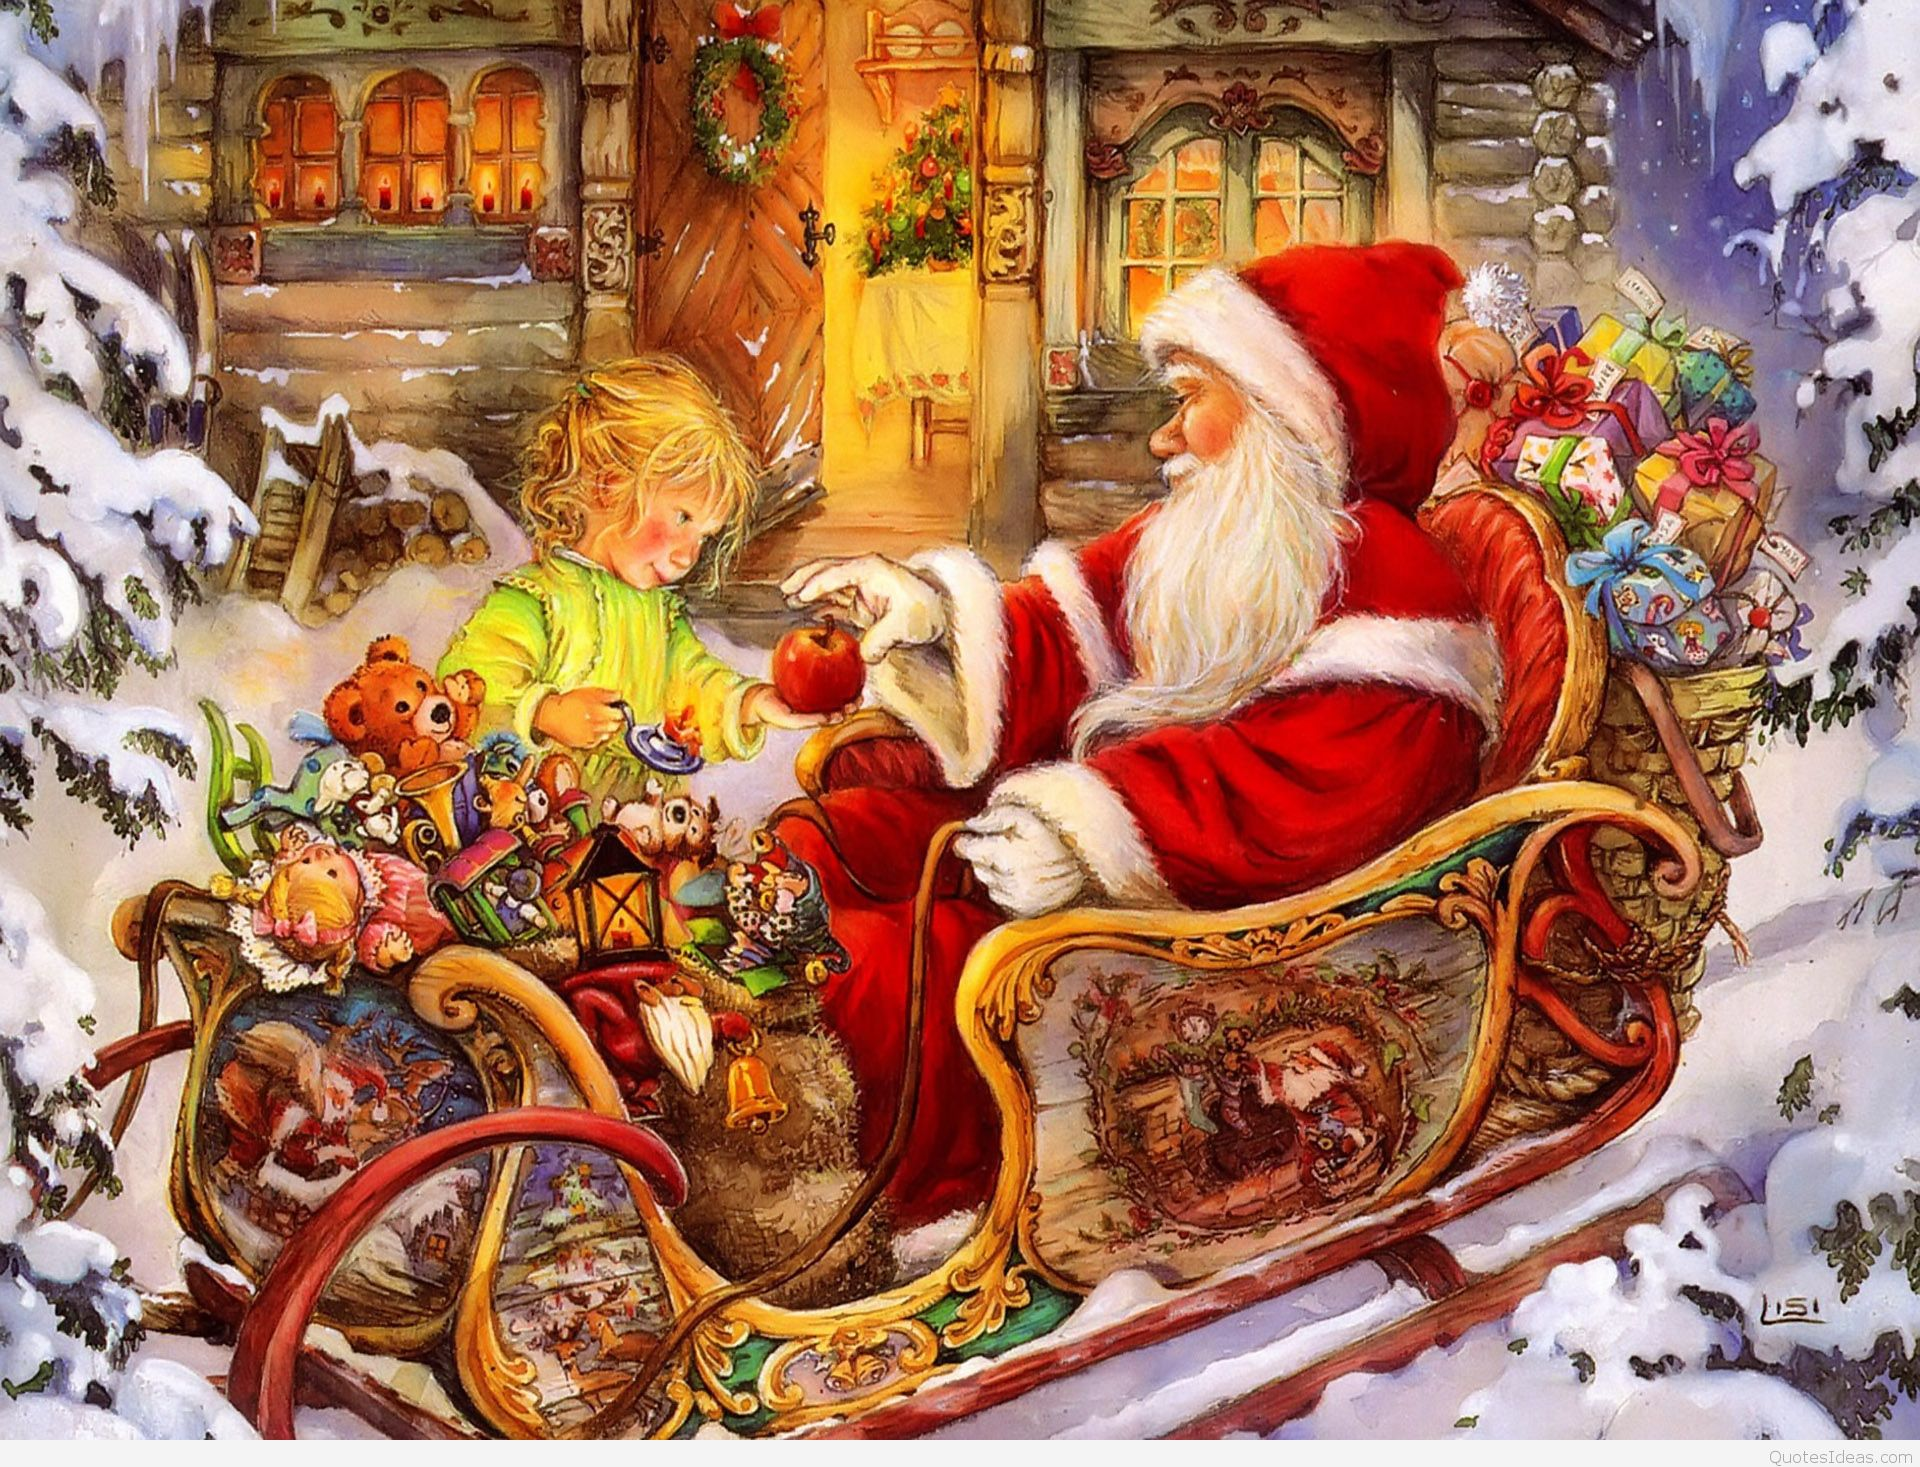 Download Santa Claus Hd Wallpaper For Laptop Mobile Christmas Day